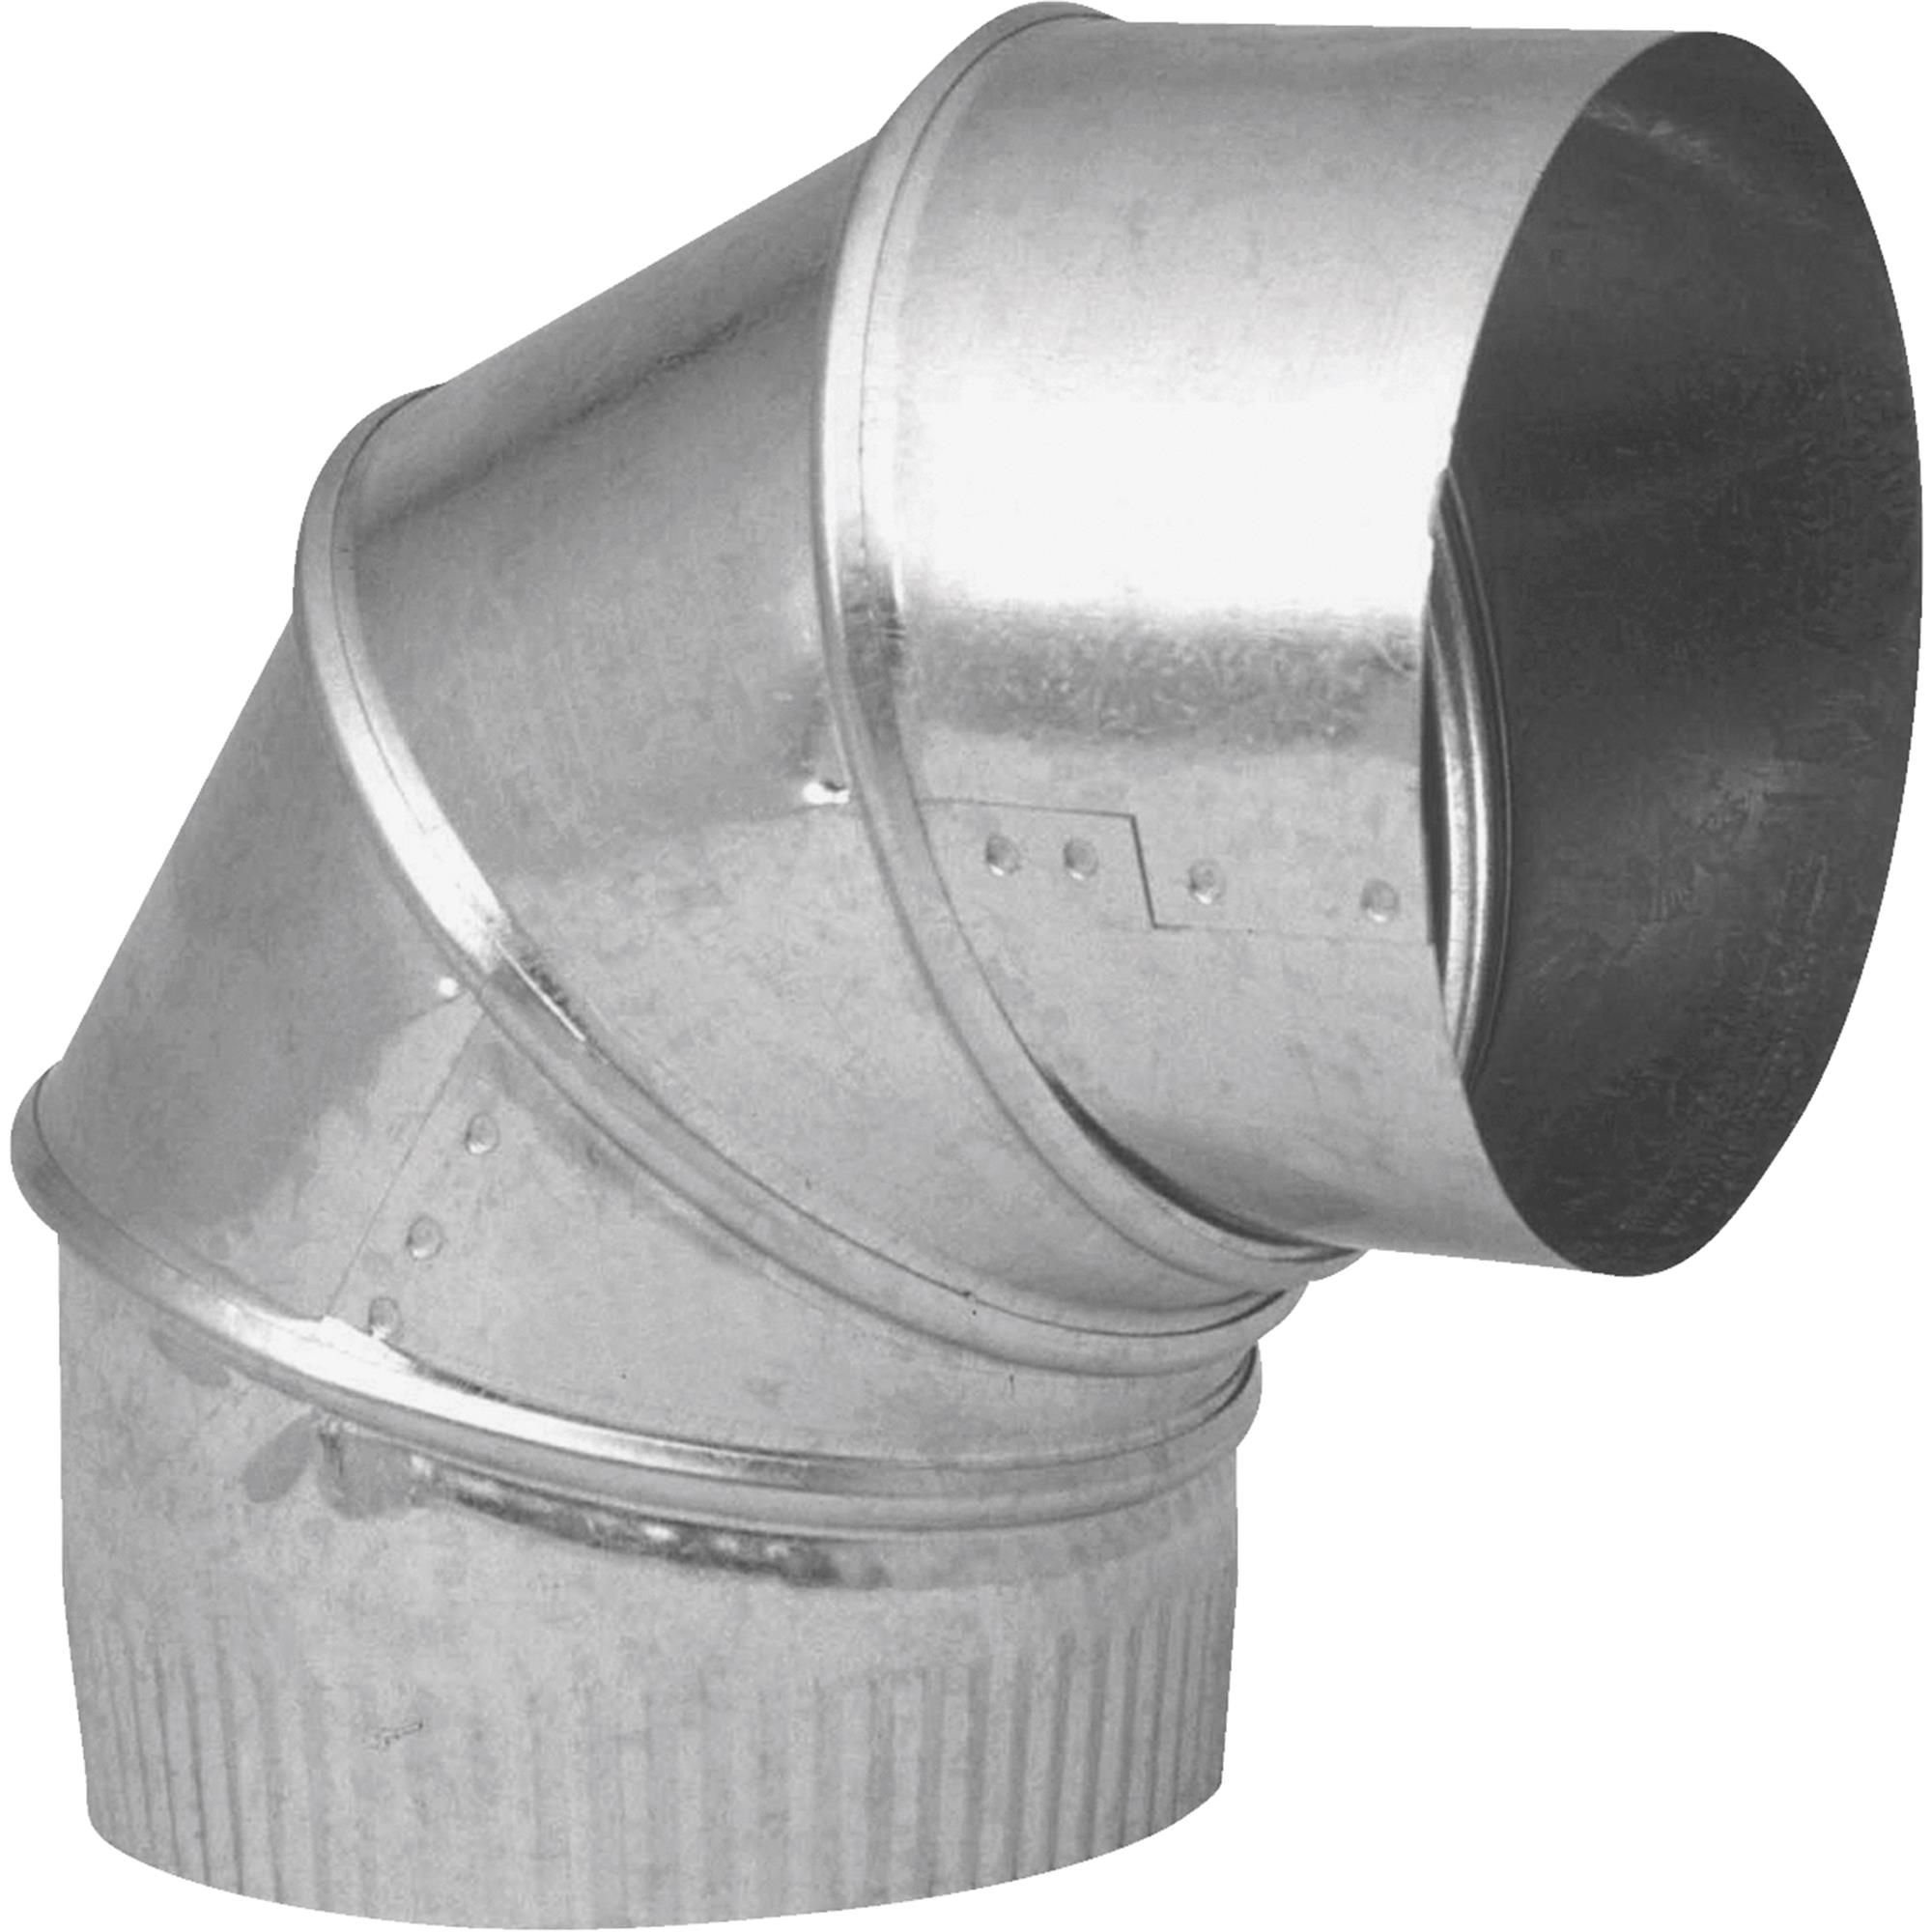 Galvanized Adjustable Elbow